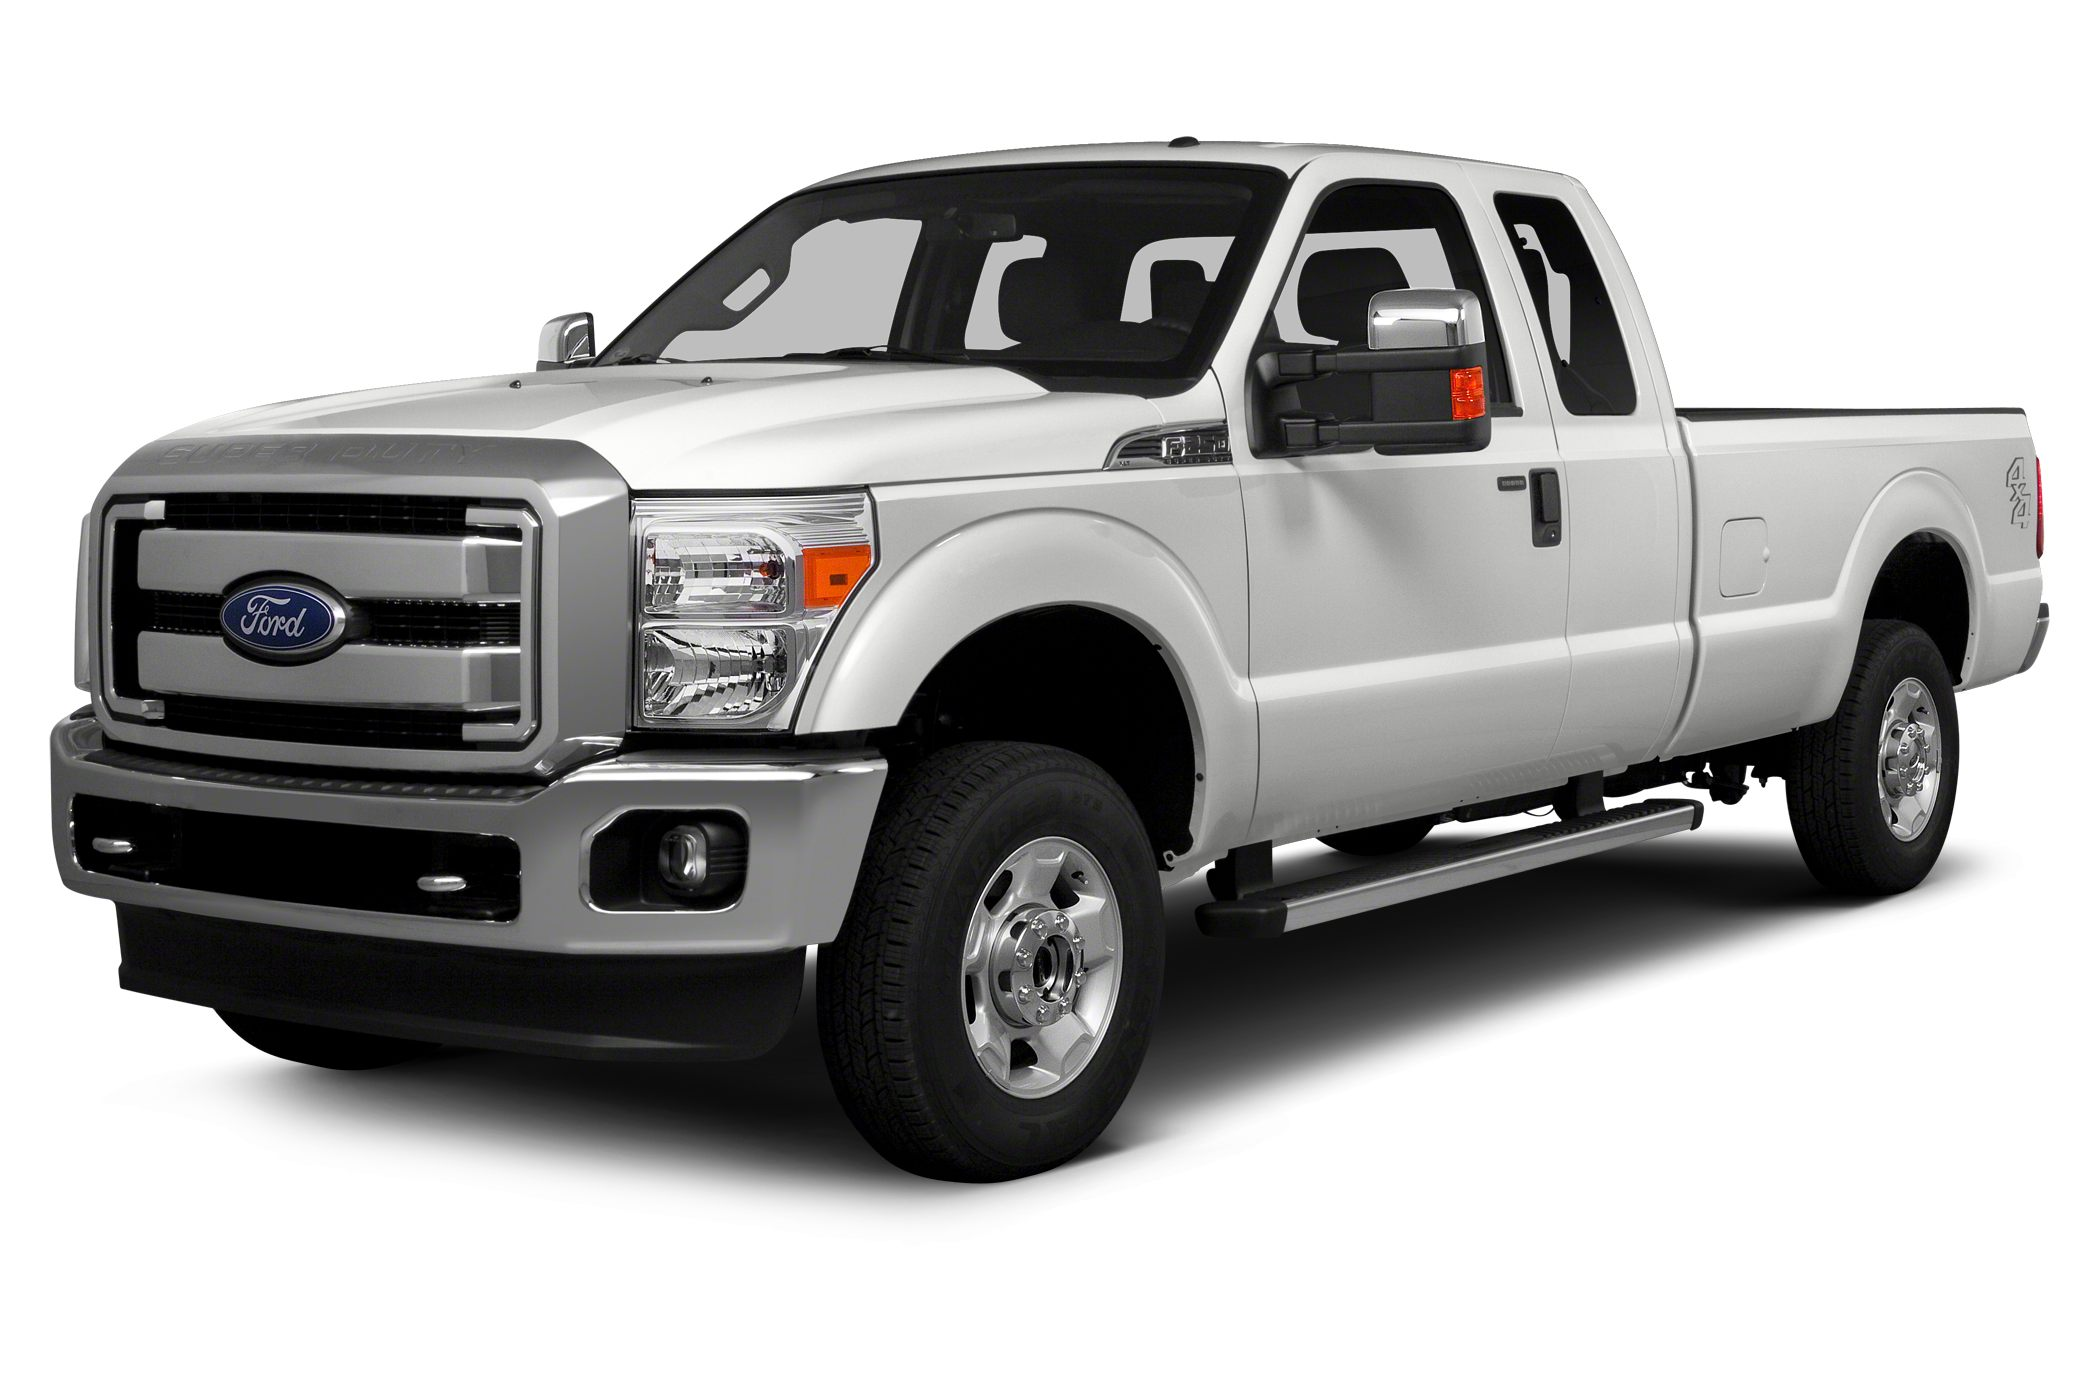 Marvelous 2016 Ford F 250 Lariat 4X4 Sd Super Cab 6 75 Ft Box 142 In Wb Srw Specs And Prices Machost Co Dining Chair Design Ideas Machostcouk